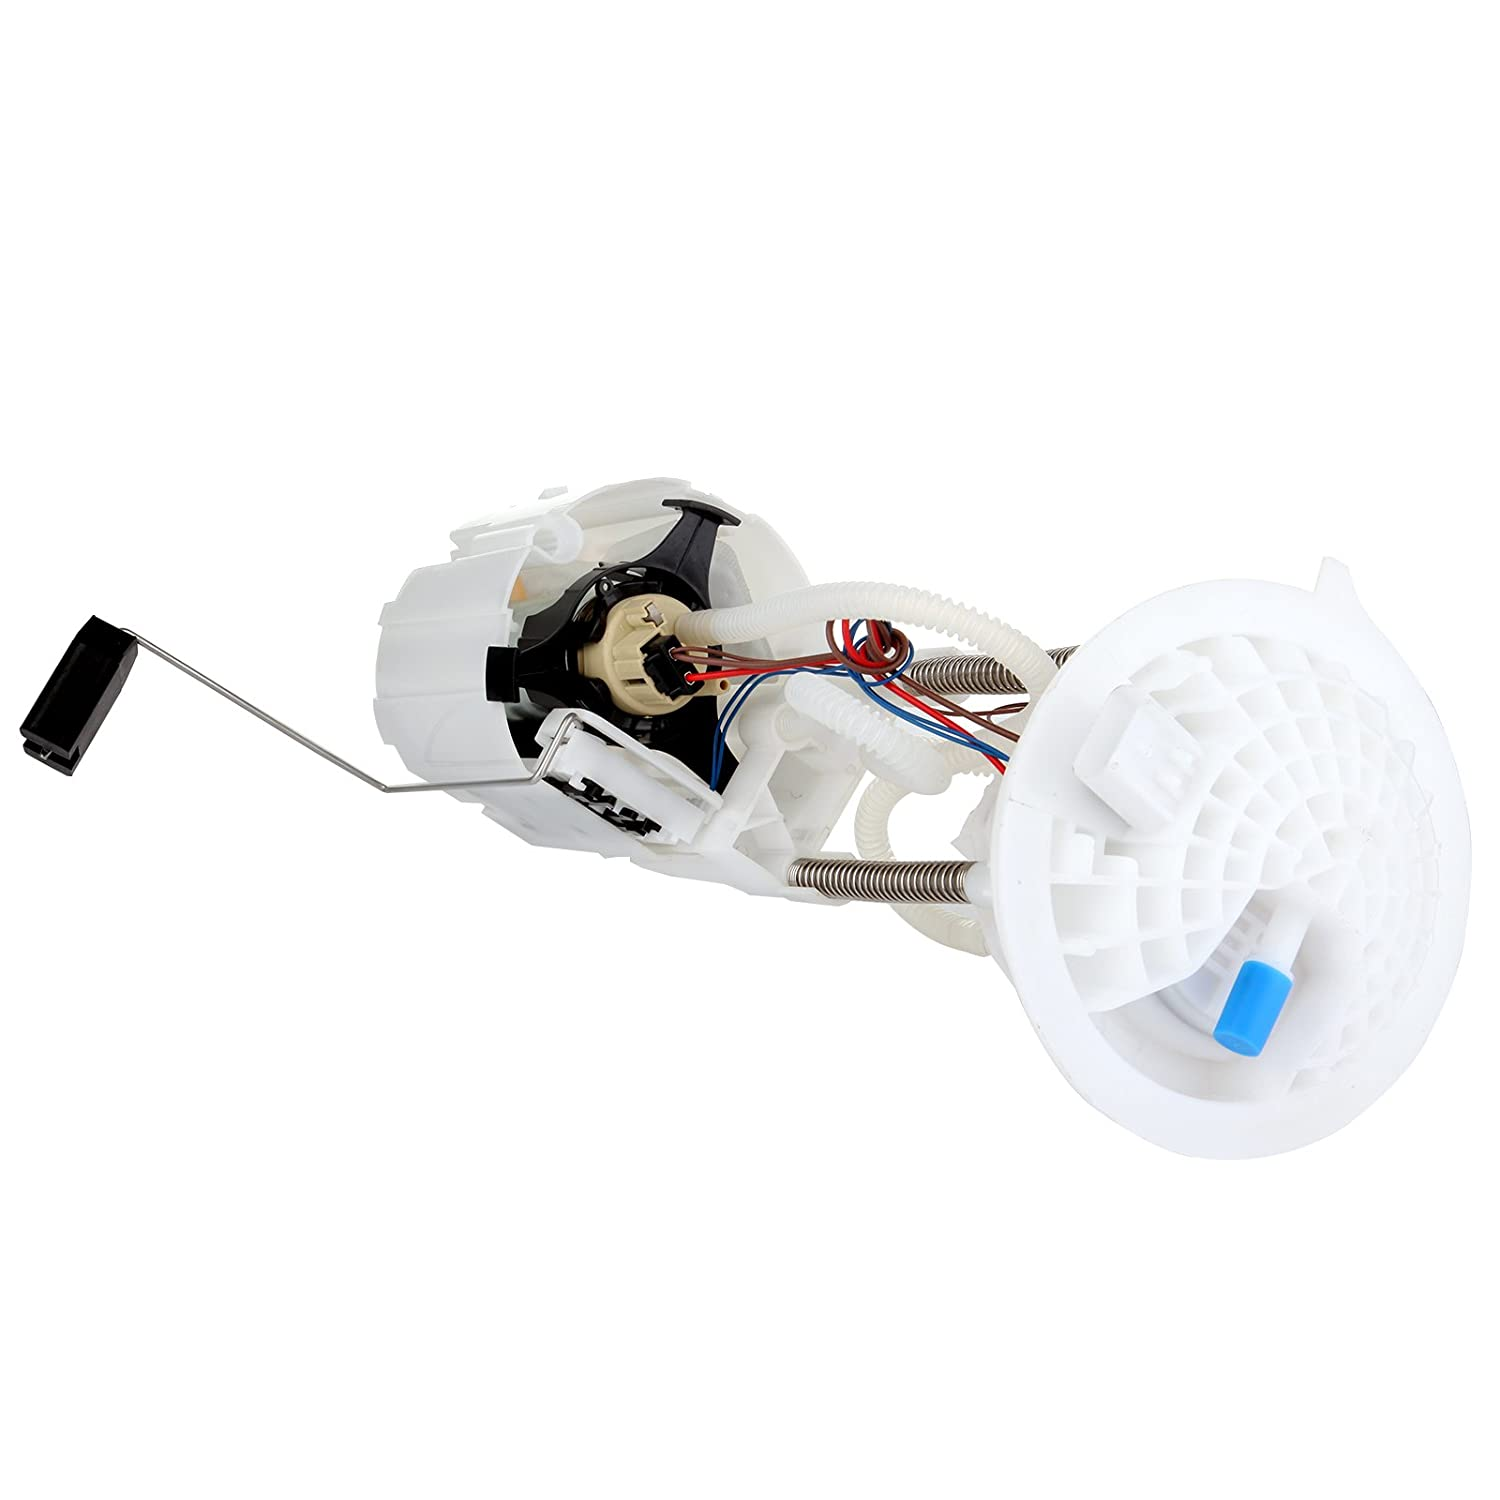 Eccpp New Electric Fuel Pump Module Assembly For 2004 2007 Durango Filter Dodge Chrysler Aspen E7184m Automotive